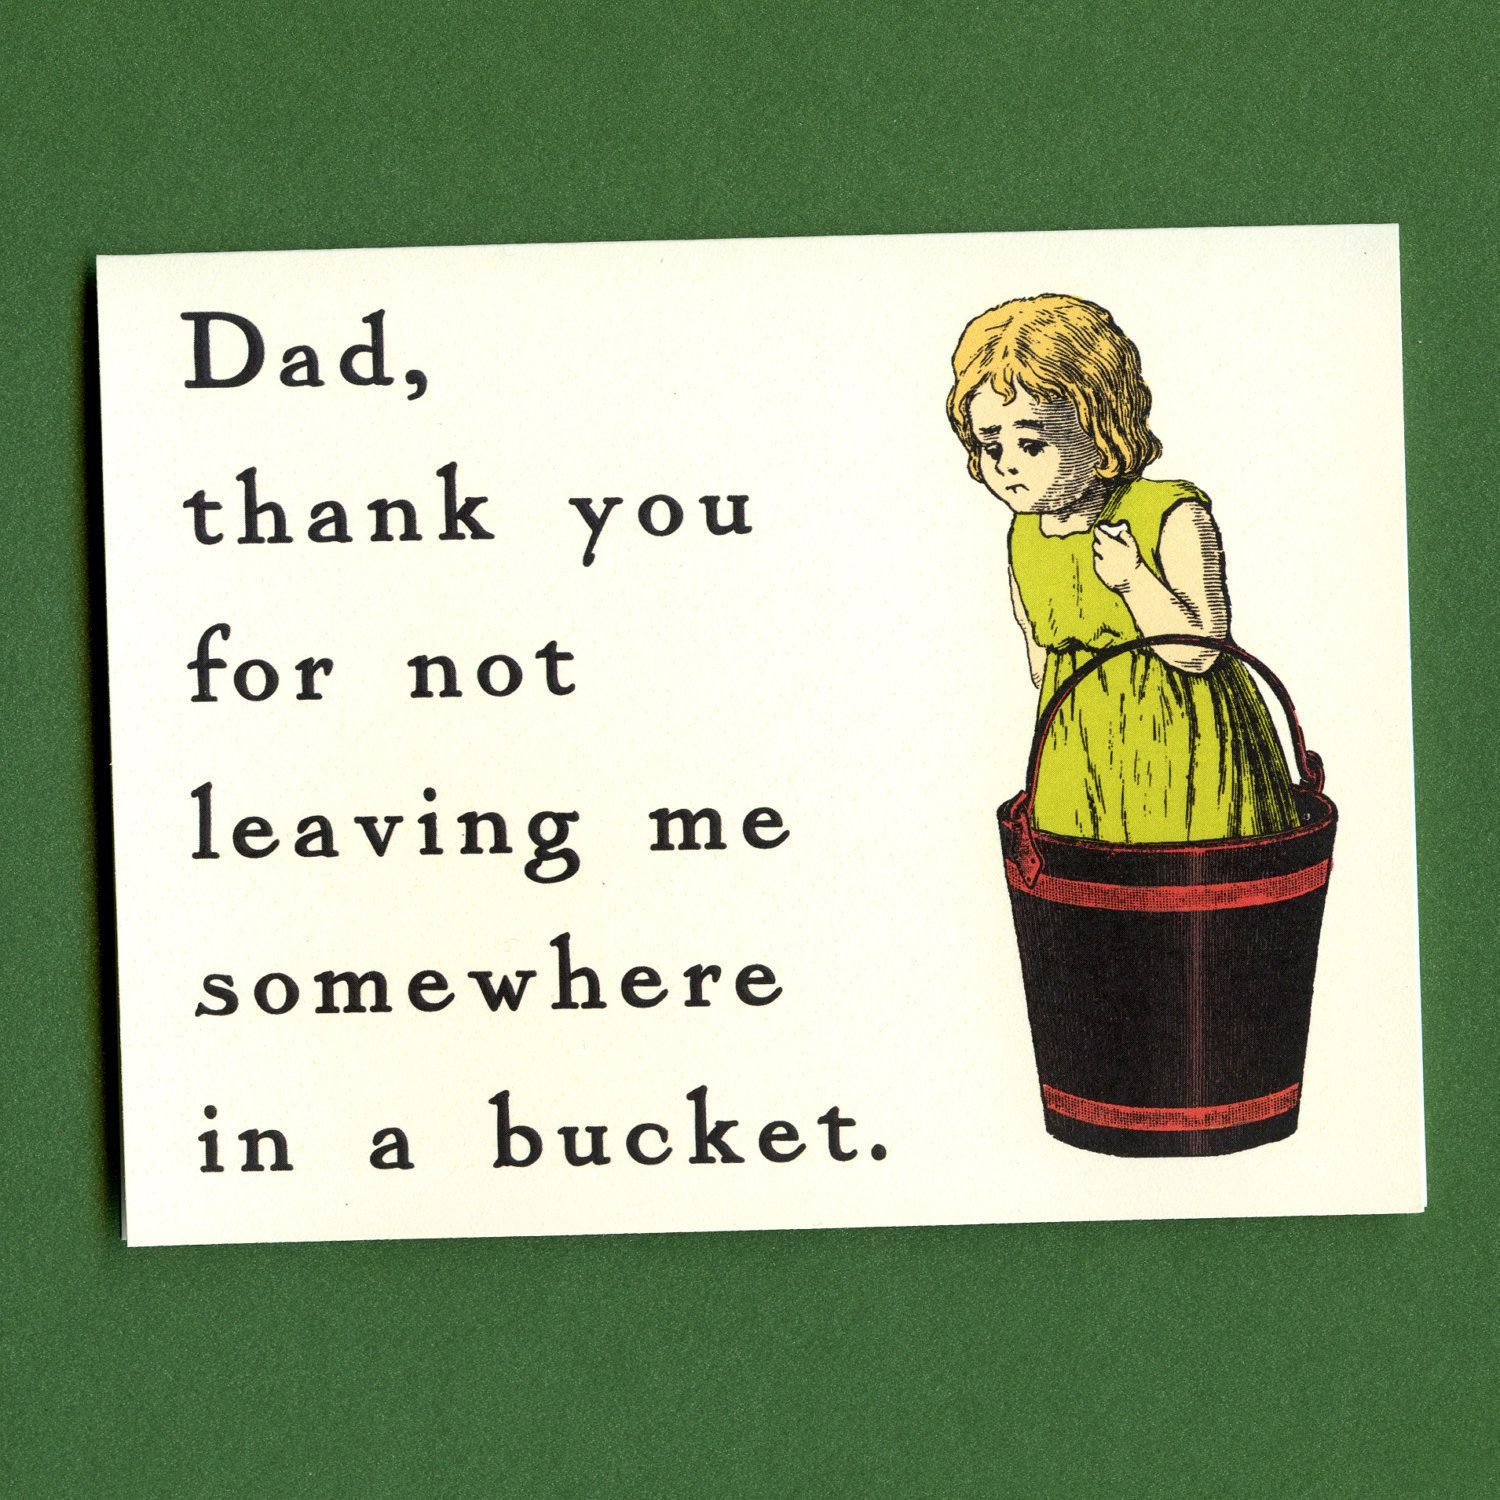 Fathers Day Funny Quotes Dad Thank You For Not Leaving Me Somewhere In a Bucket